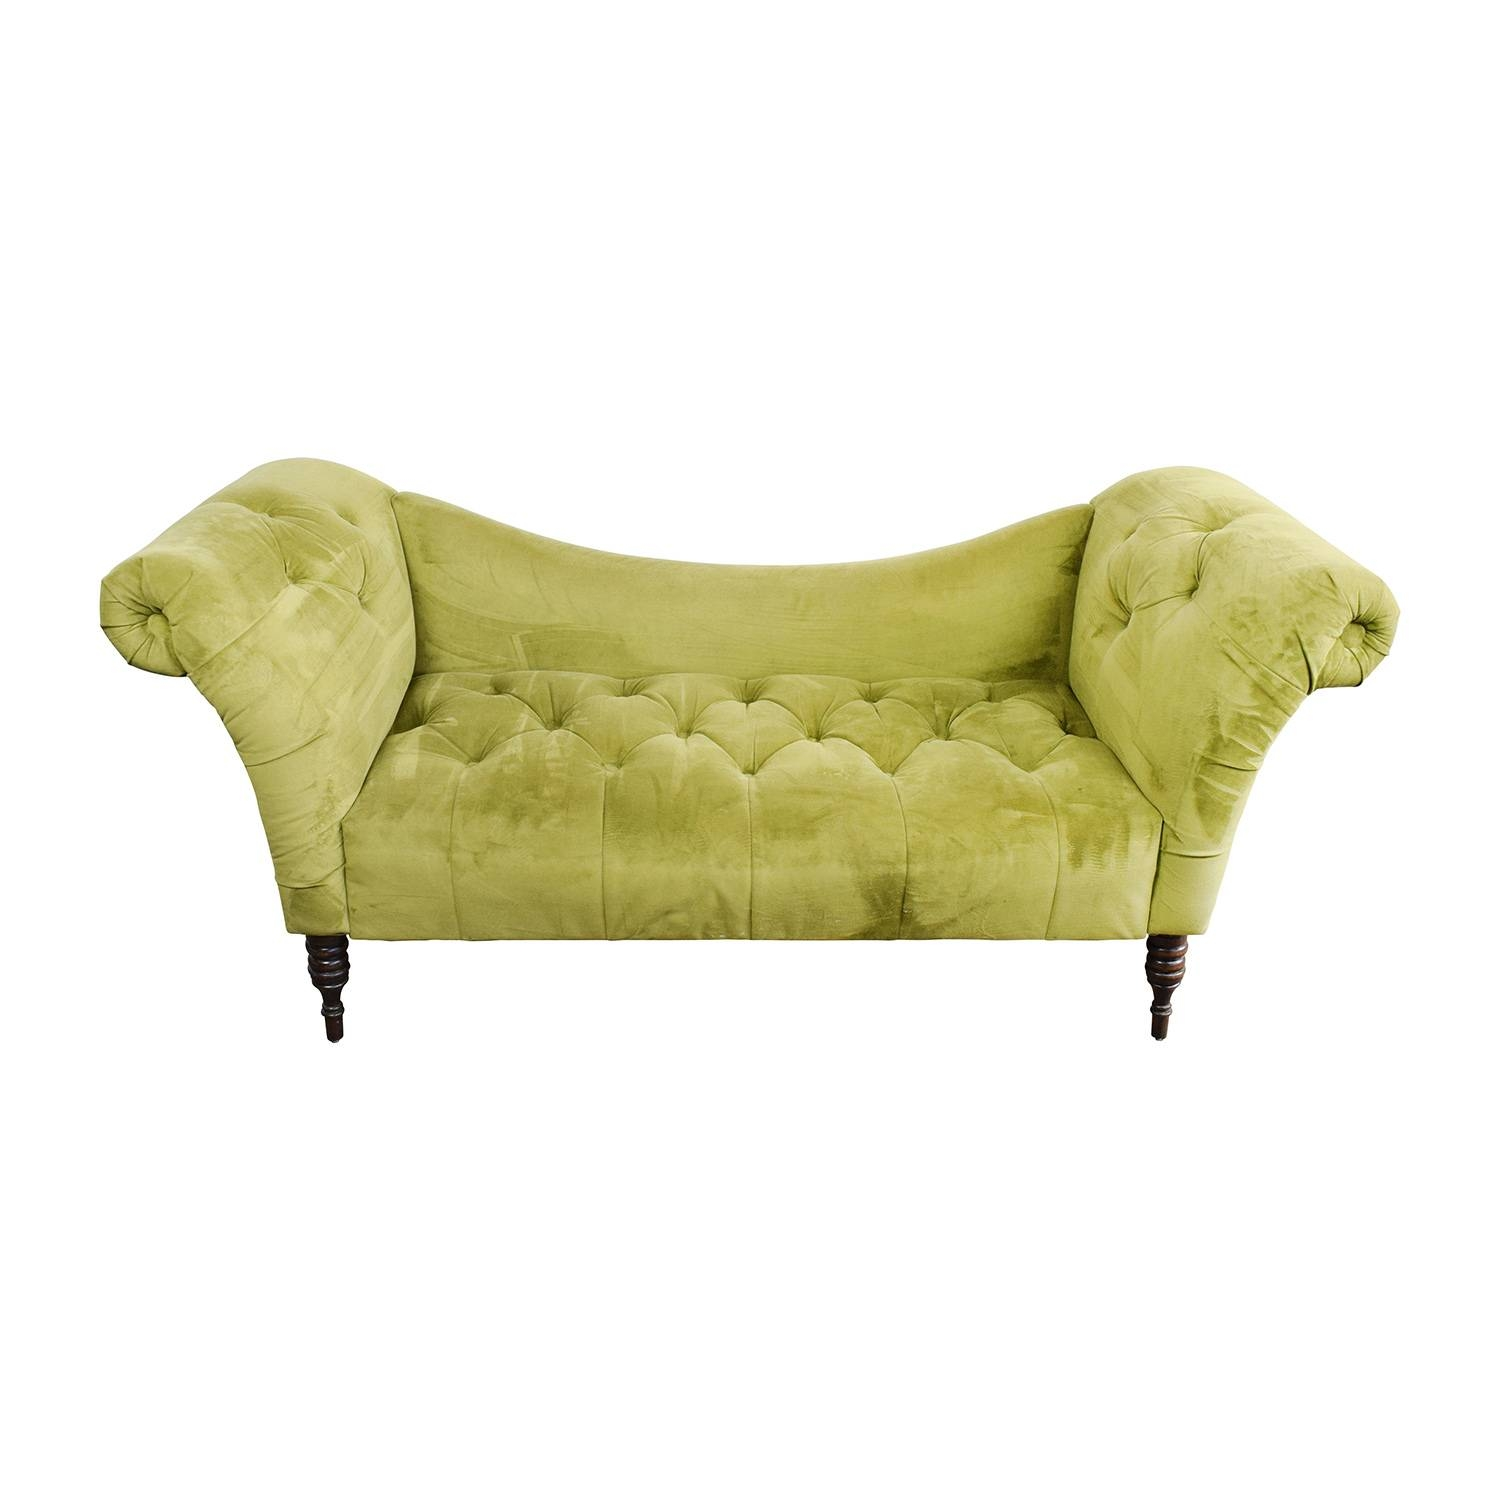 31% Off - West Elm West Elm Henry Gray Loveseat / Sofas inside Antoinette Fainting Sofas (Image 9 of 15)